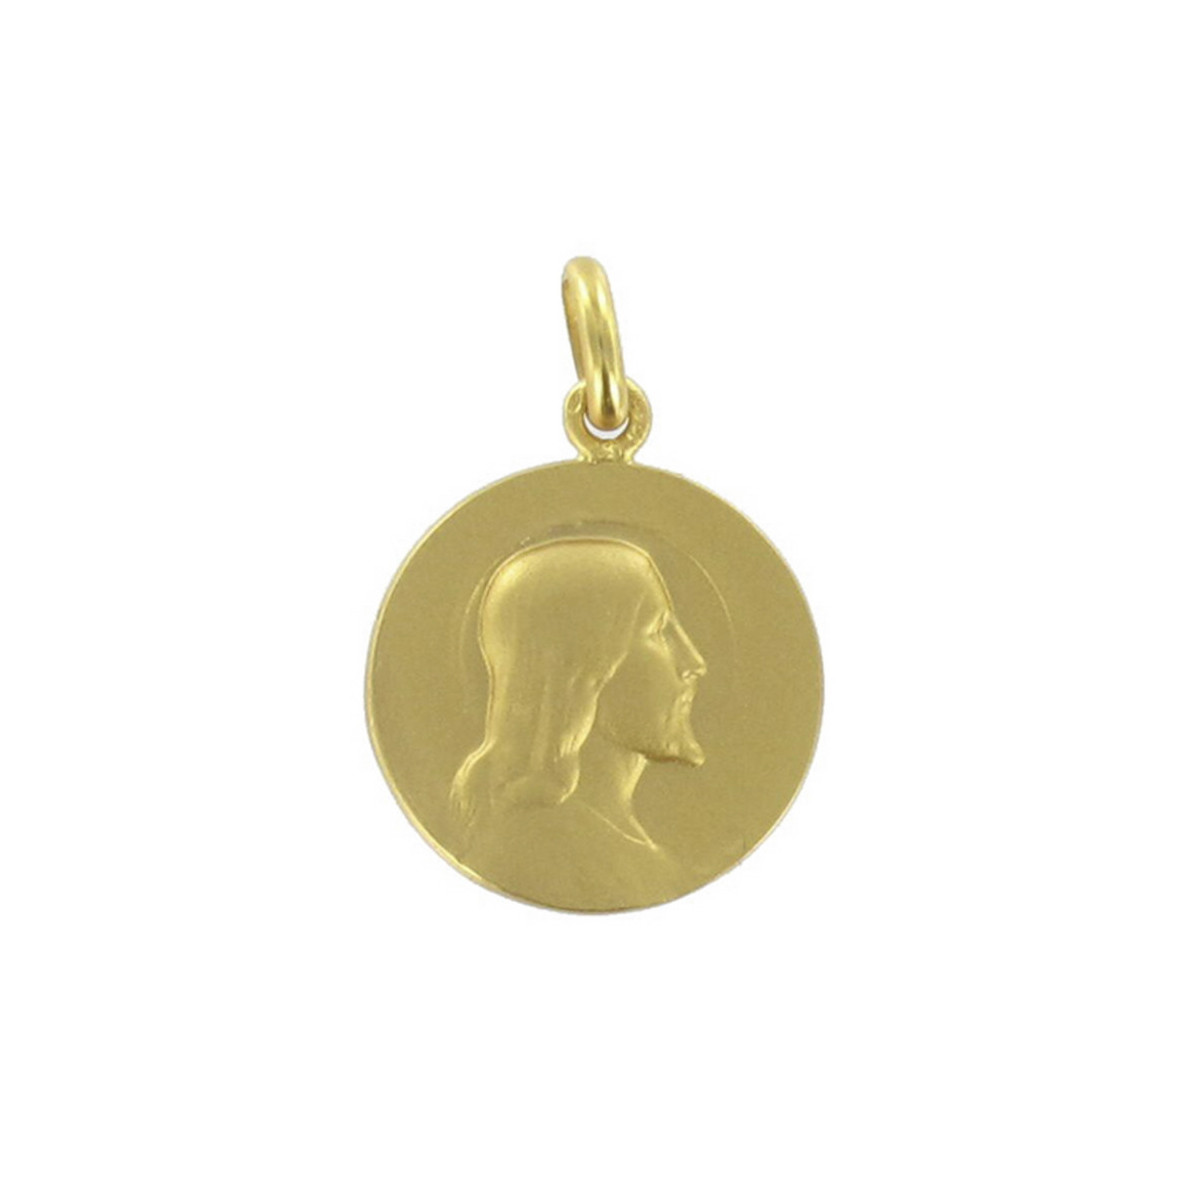 GOLD SCAPULAR WITH FACES 2.80 GR